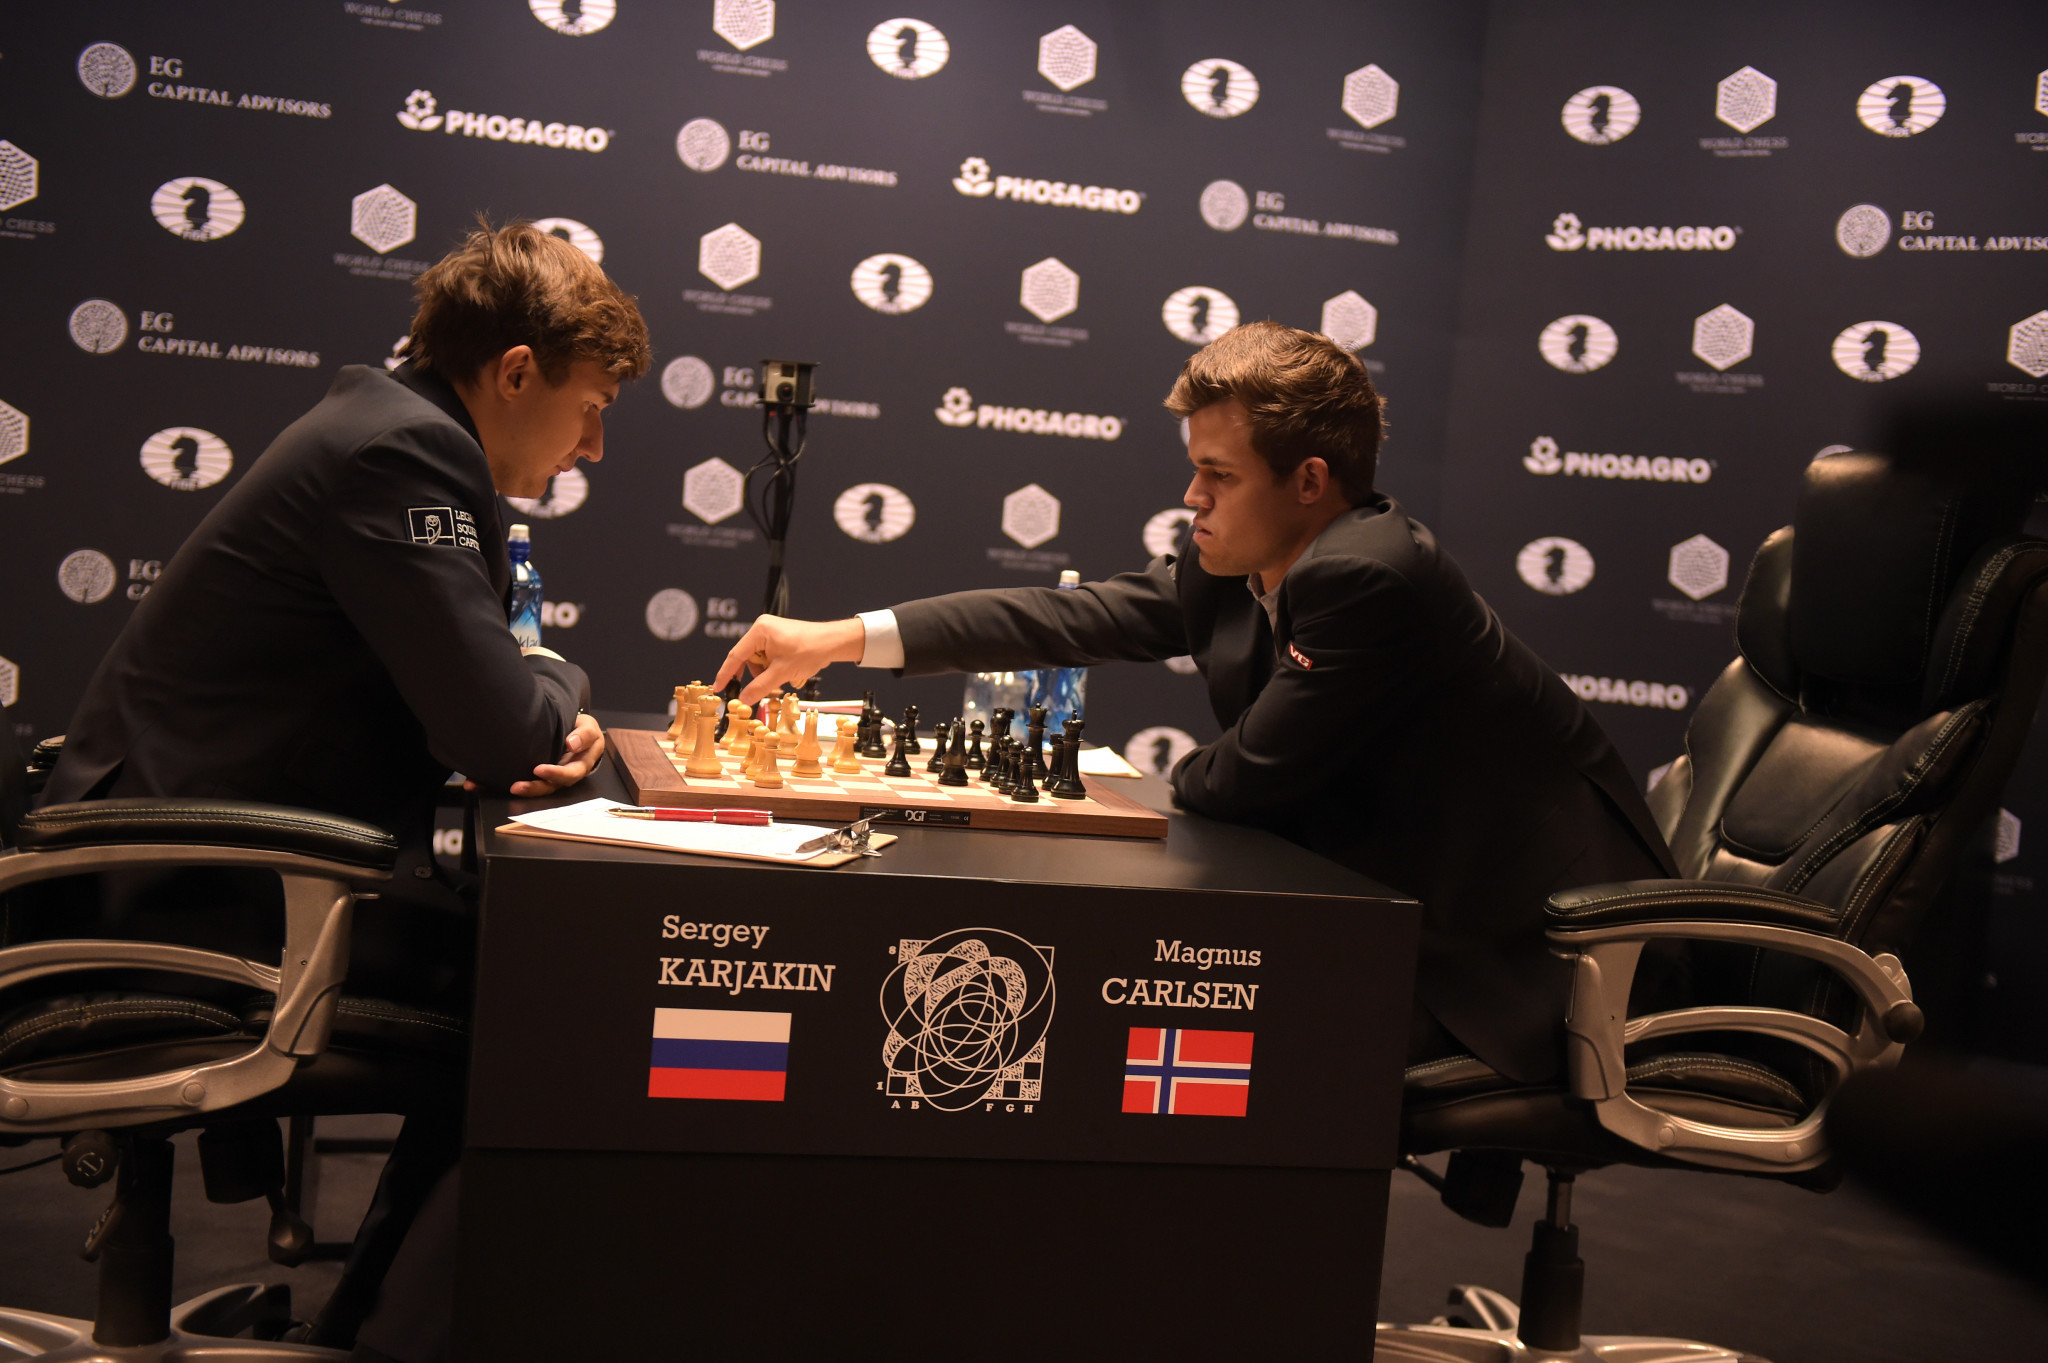 The World Chess Championship,held in New York City in 2016, between Norway's Carlsen Magnus and Russia's Sergey Karjakin had a media reach of 1.5 billion, it has been claimed ©Getty Images